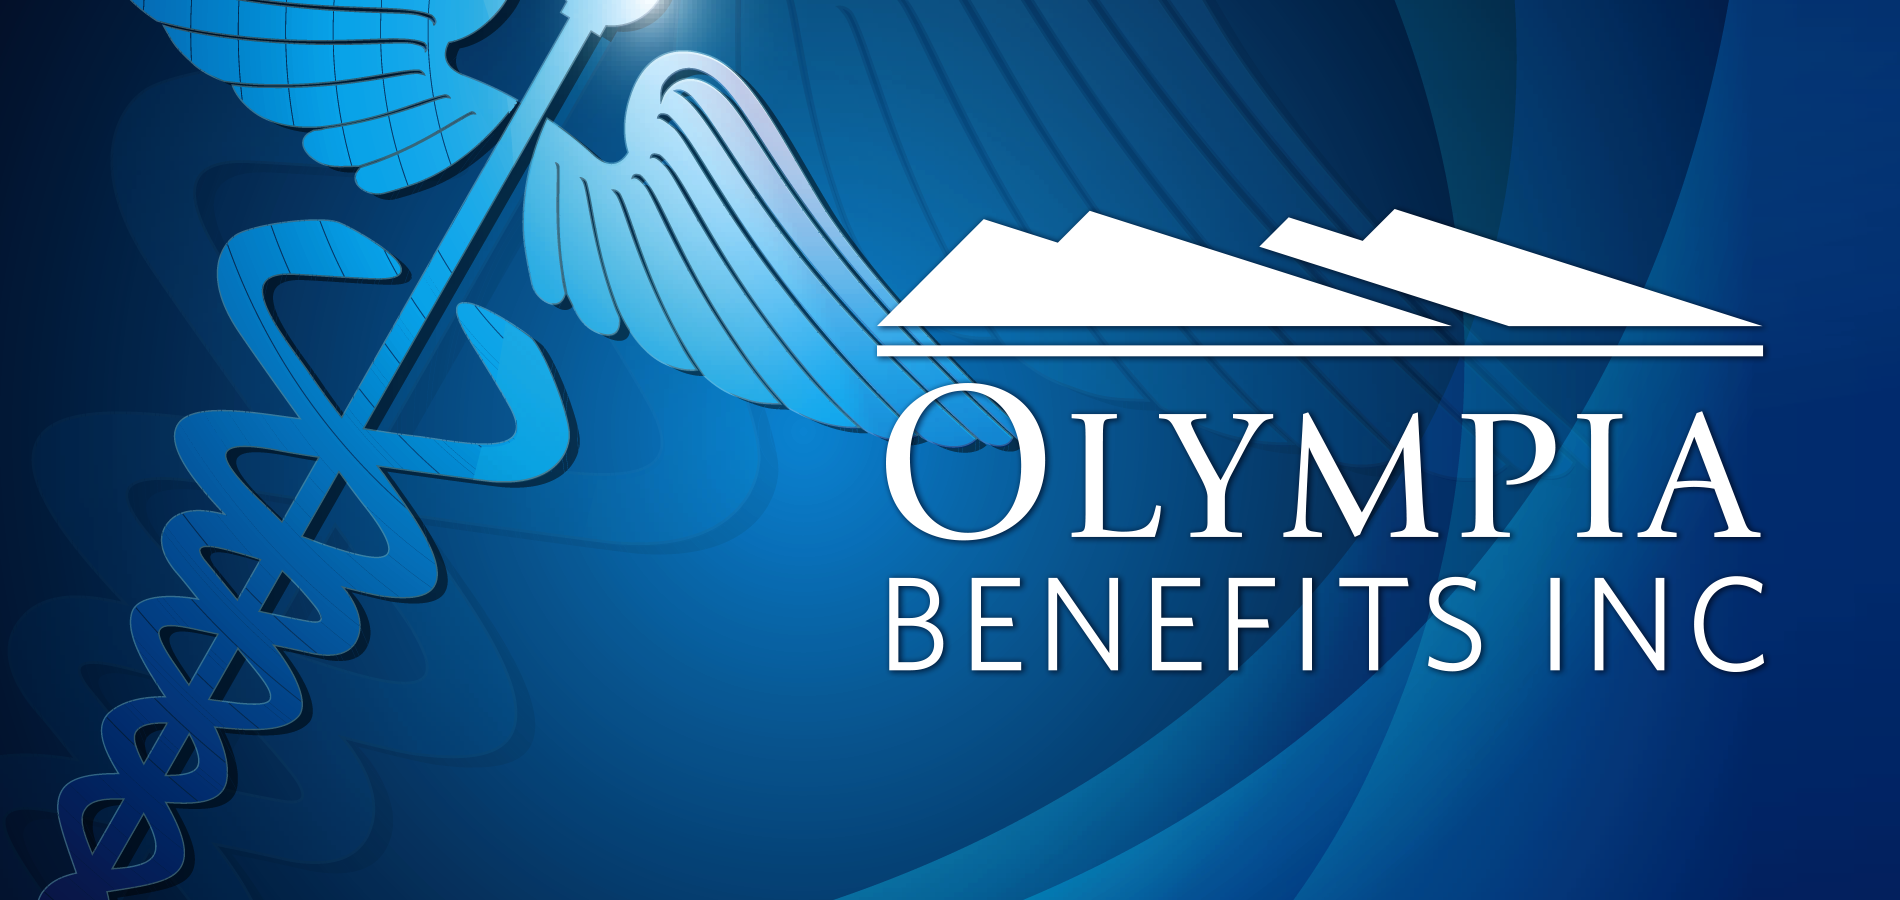 Health Spending Account Cra Olympia Benefits Blog Small Business